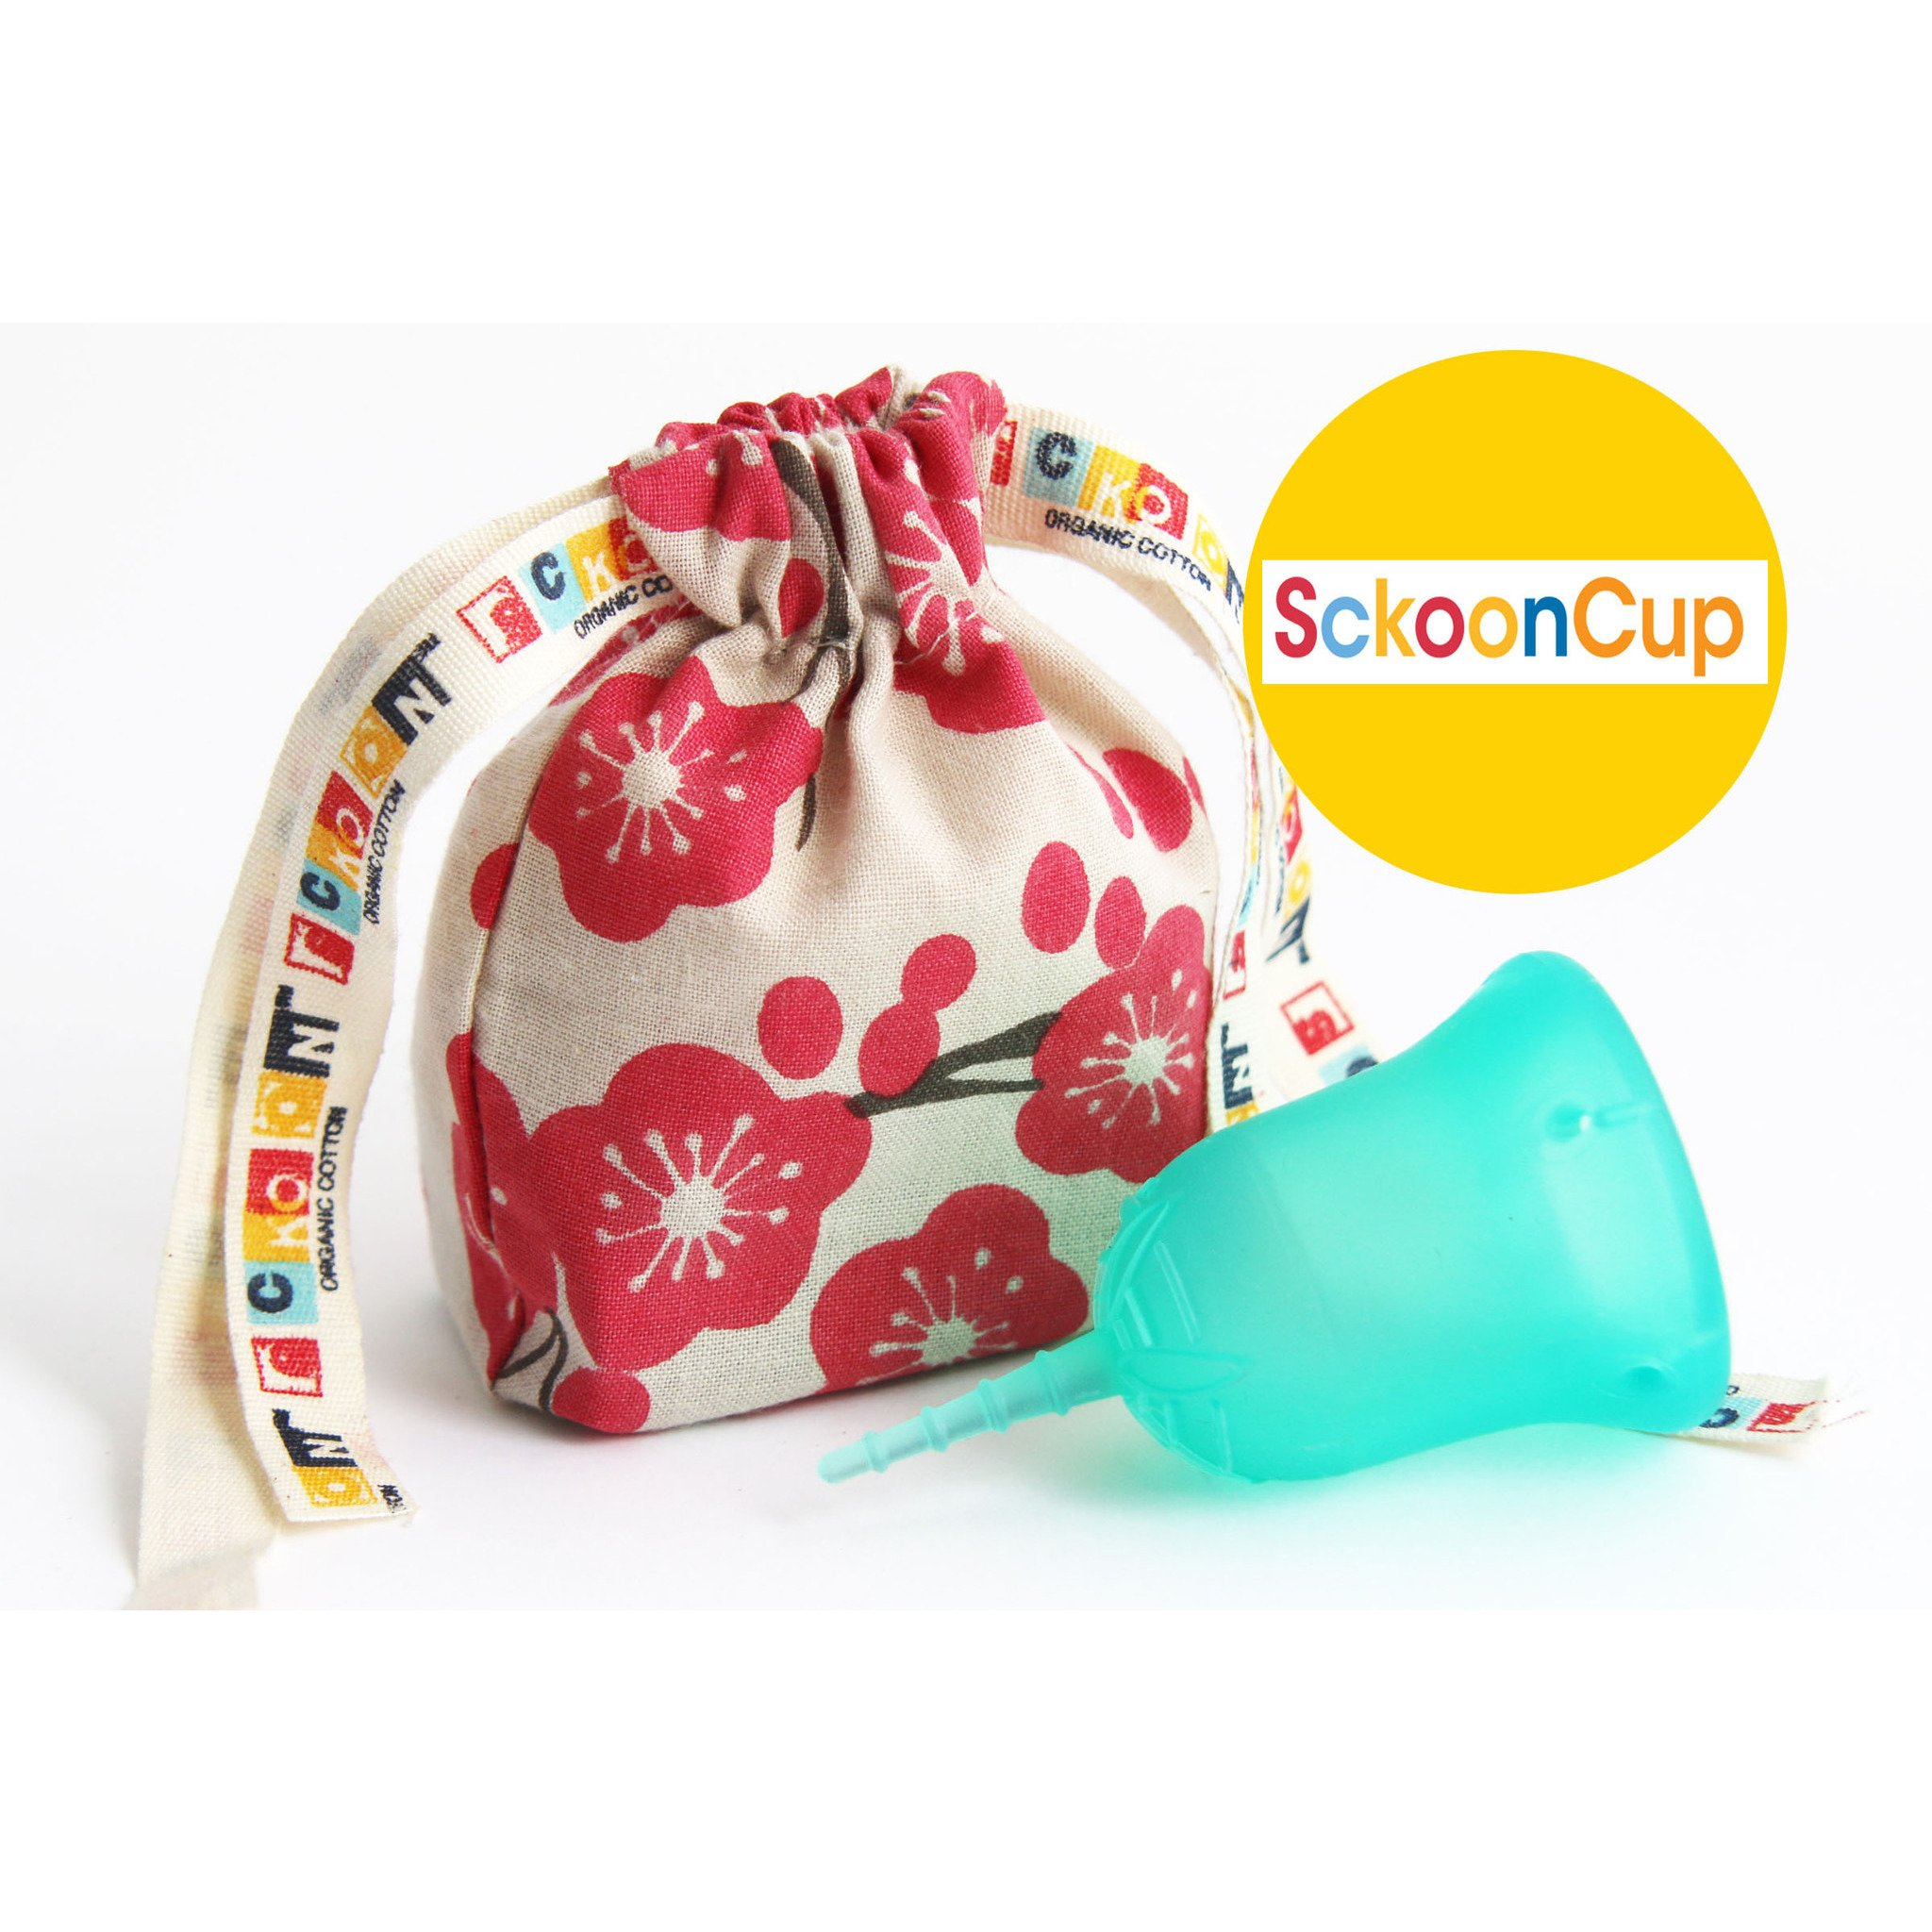 Sckoon    Often recommended for a low cervix or sensitive insertion, the Sckoon menstrual cup is the softest on the market. We carry it in size 1 and size 2 and it comes with its own drawstring bag.